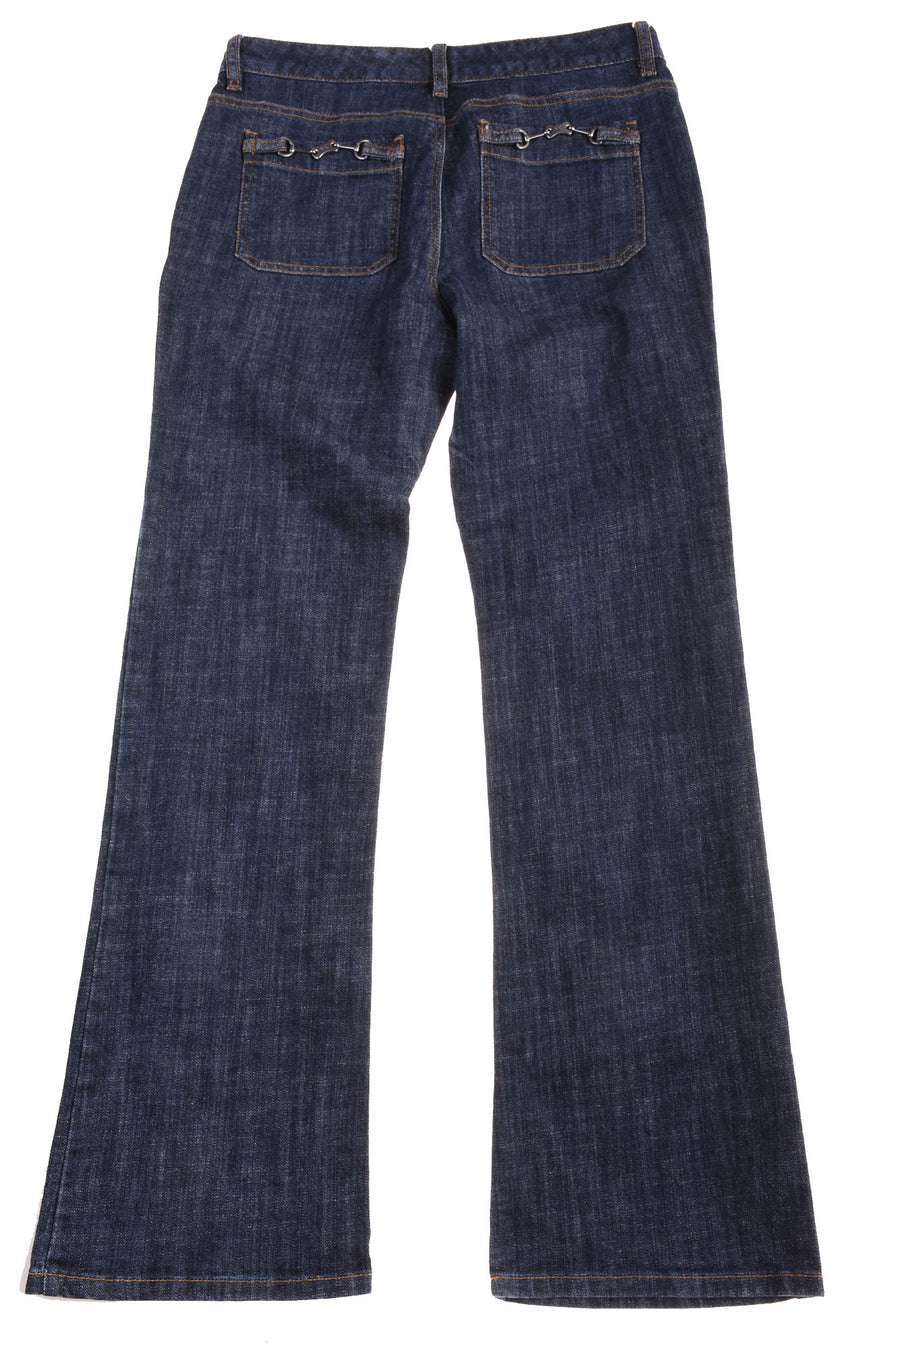 USED Michael Kors Women's Jeans 6 Blue